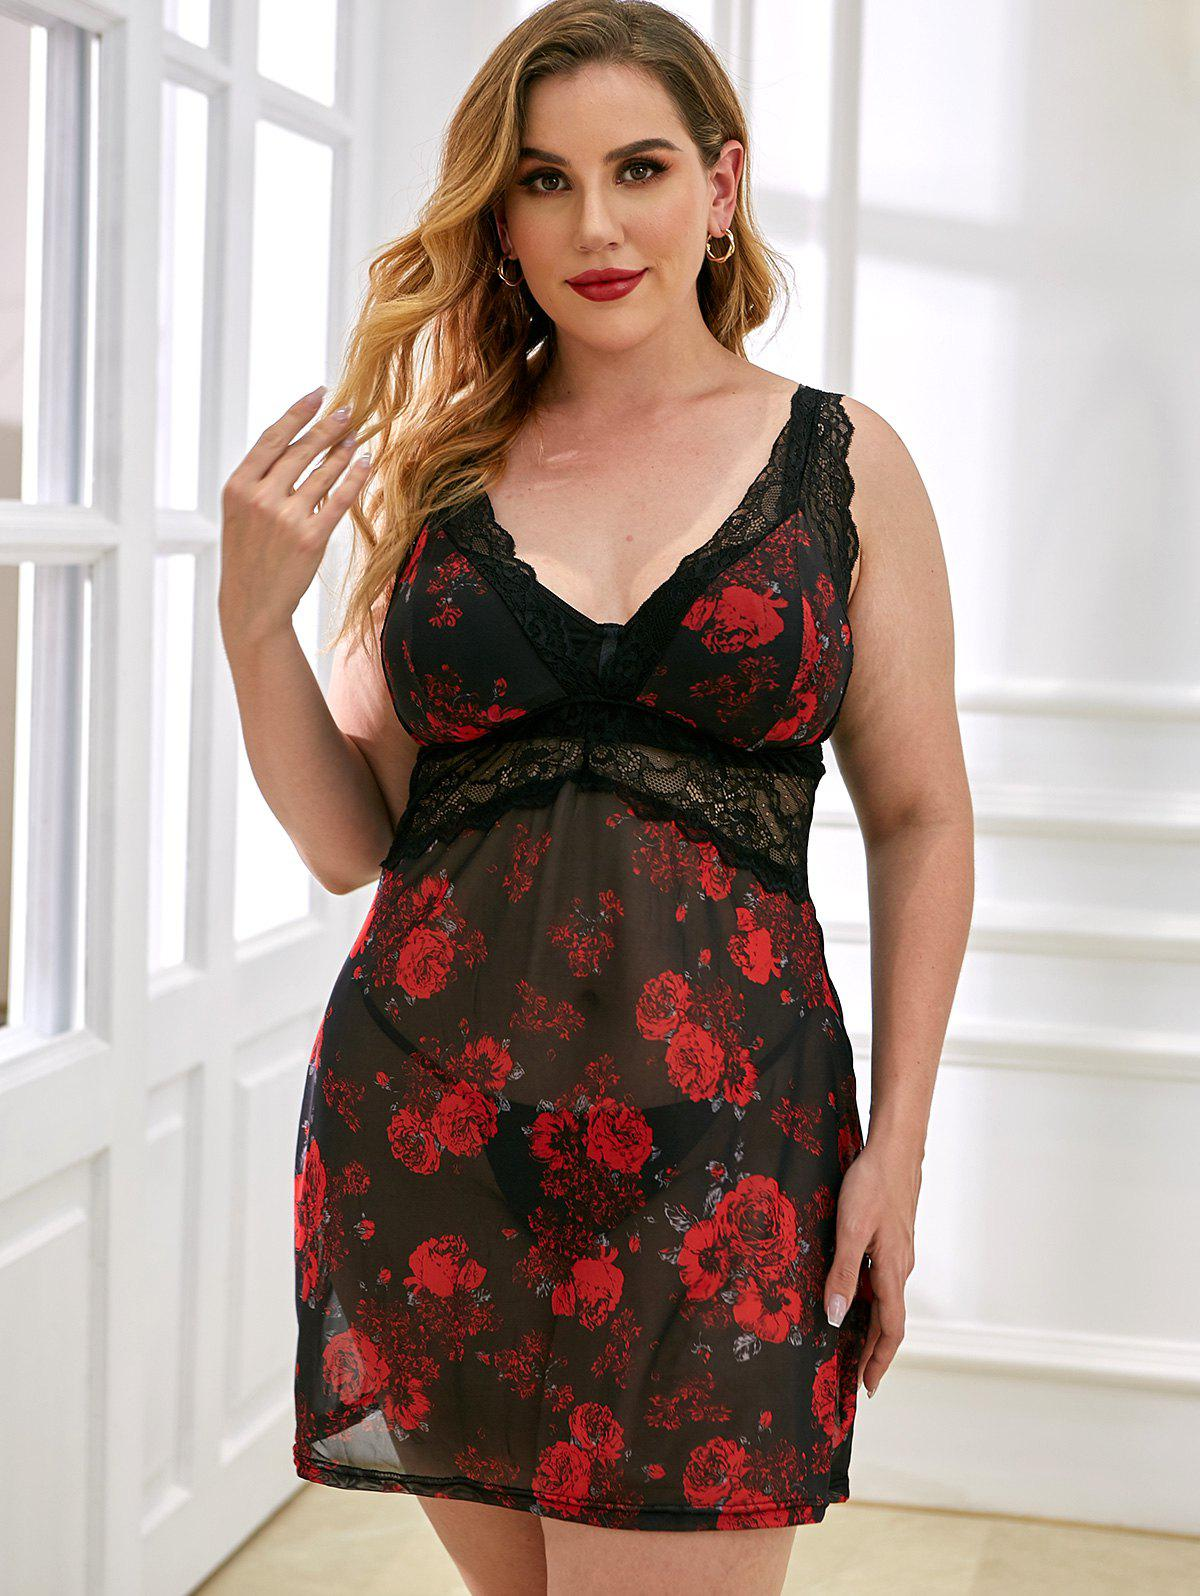 Plus Size Mesh Babydoll Red - Wholesale Lingerie,Sexy